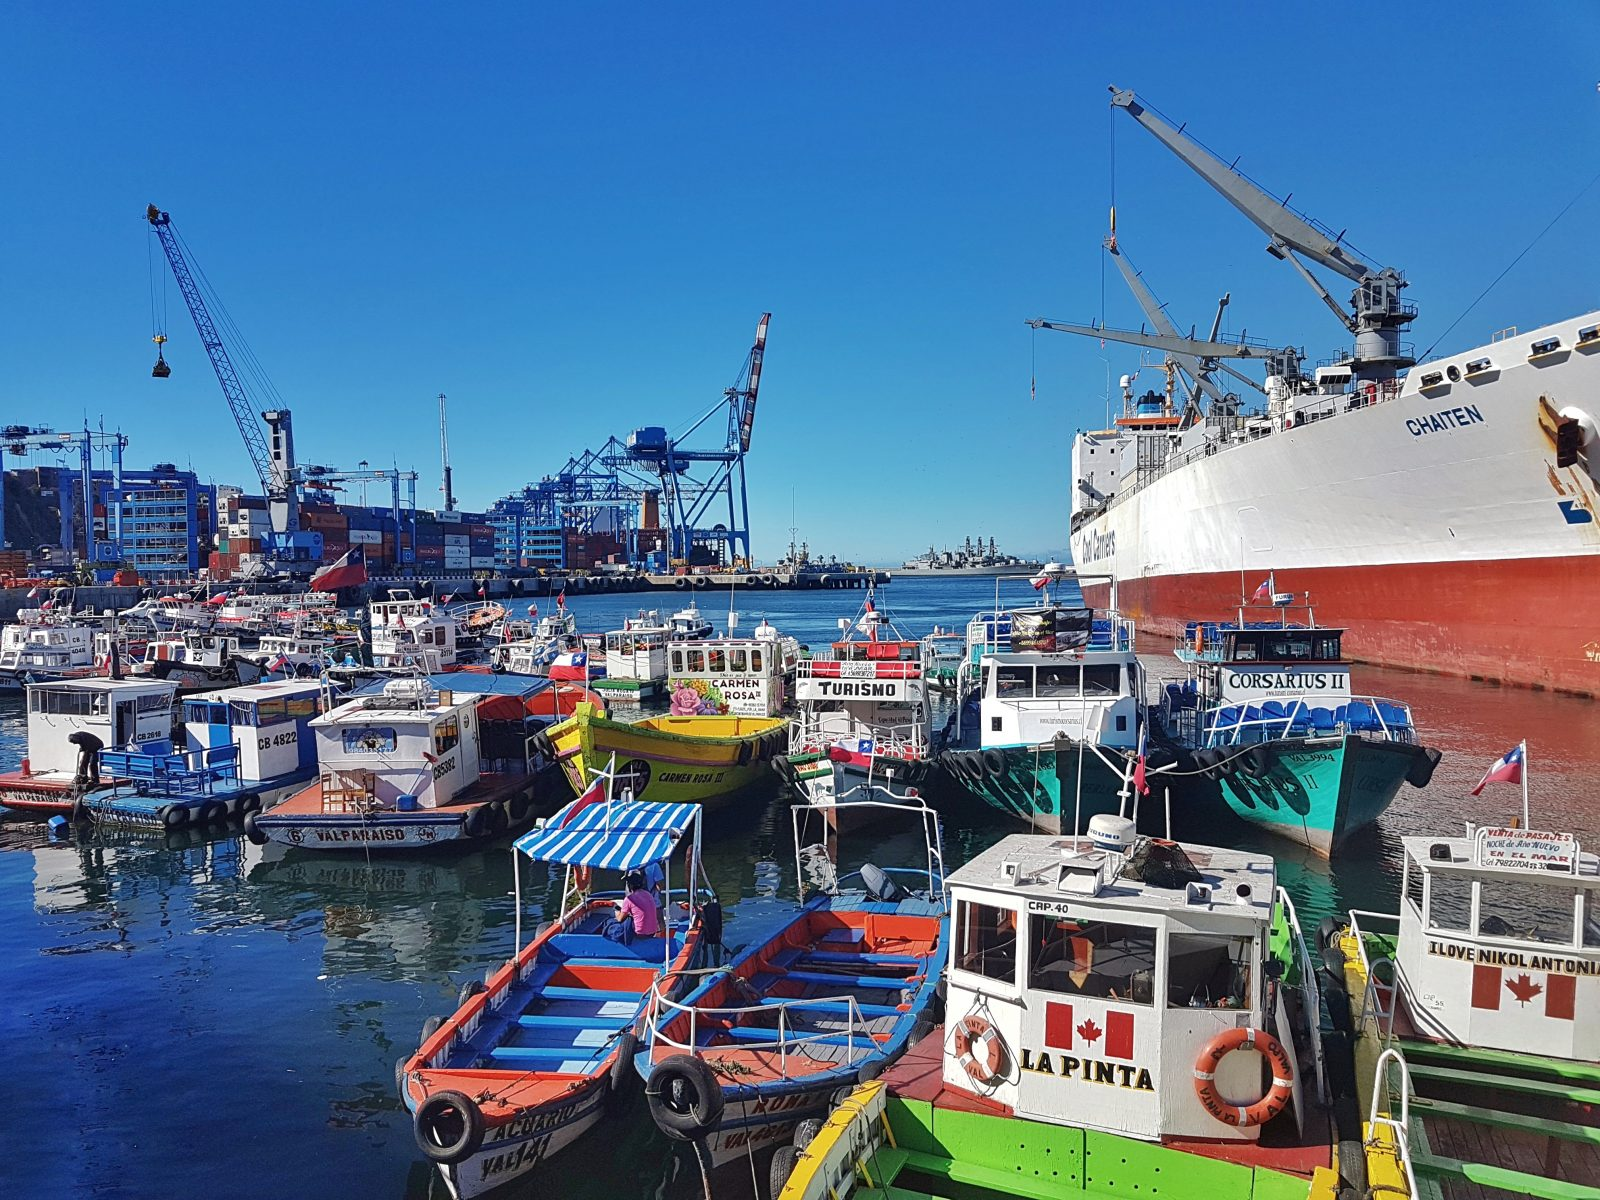 "<img src=""images/"" width=""800"" height=""600"" alt=""valparaíso - Muelle Pratt Valpara  so - Chile: Valparaíso, Mountains, Murals and Music."">"